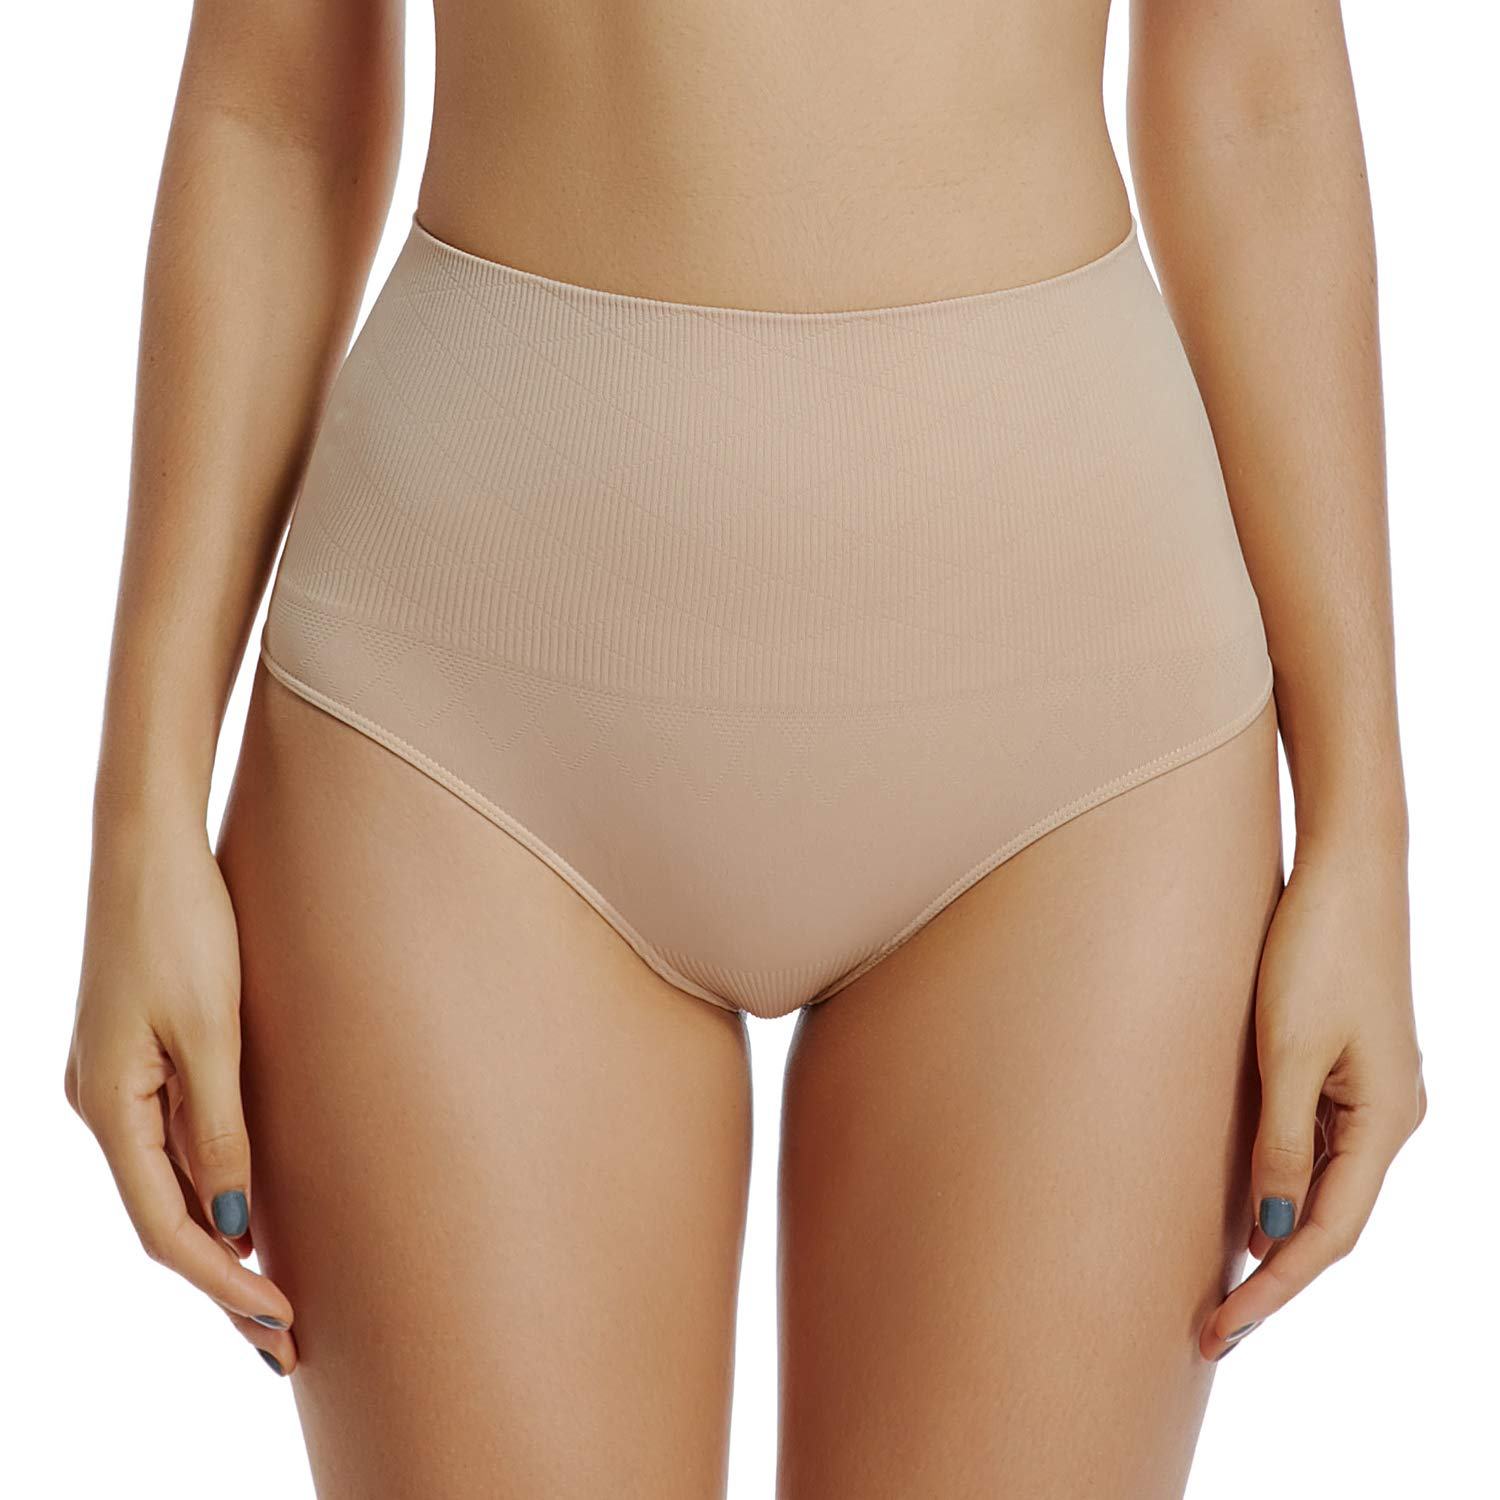 a8ec0c1f4 Thong Underwear for Women Thongs Shapewear High Waist Cincher Panty Tummy  Slimmer Sexy Panties Seamless at Amazon Women s Clothing store